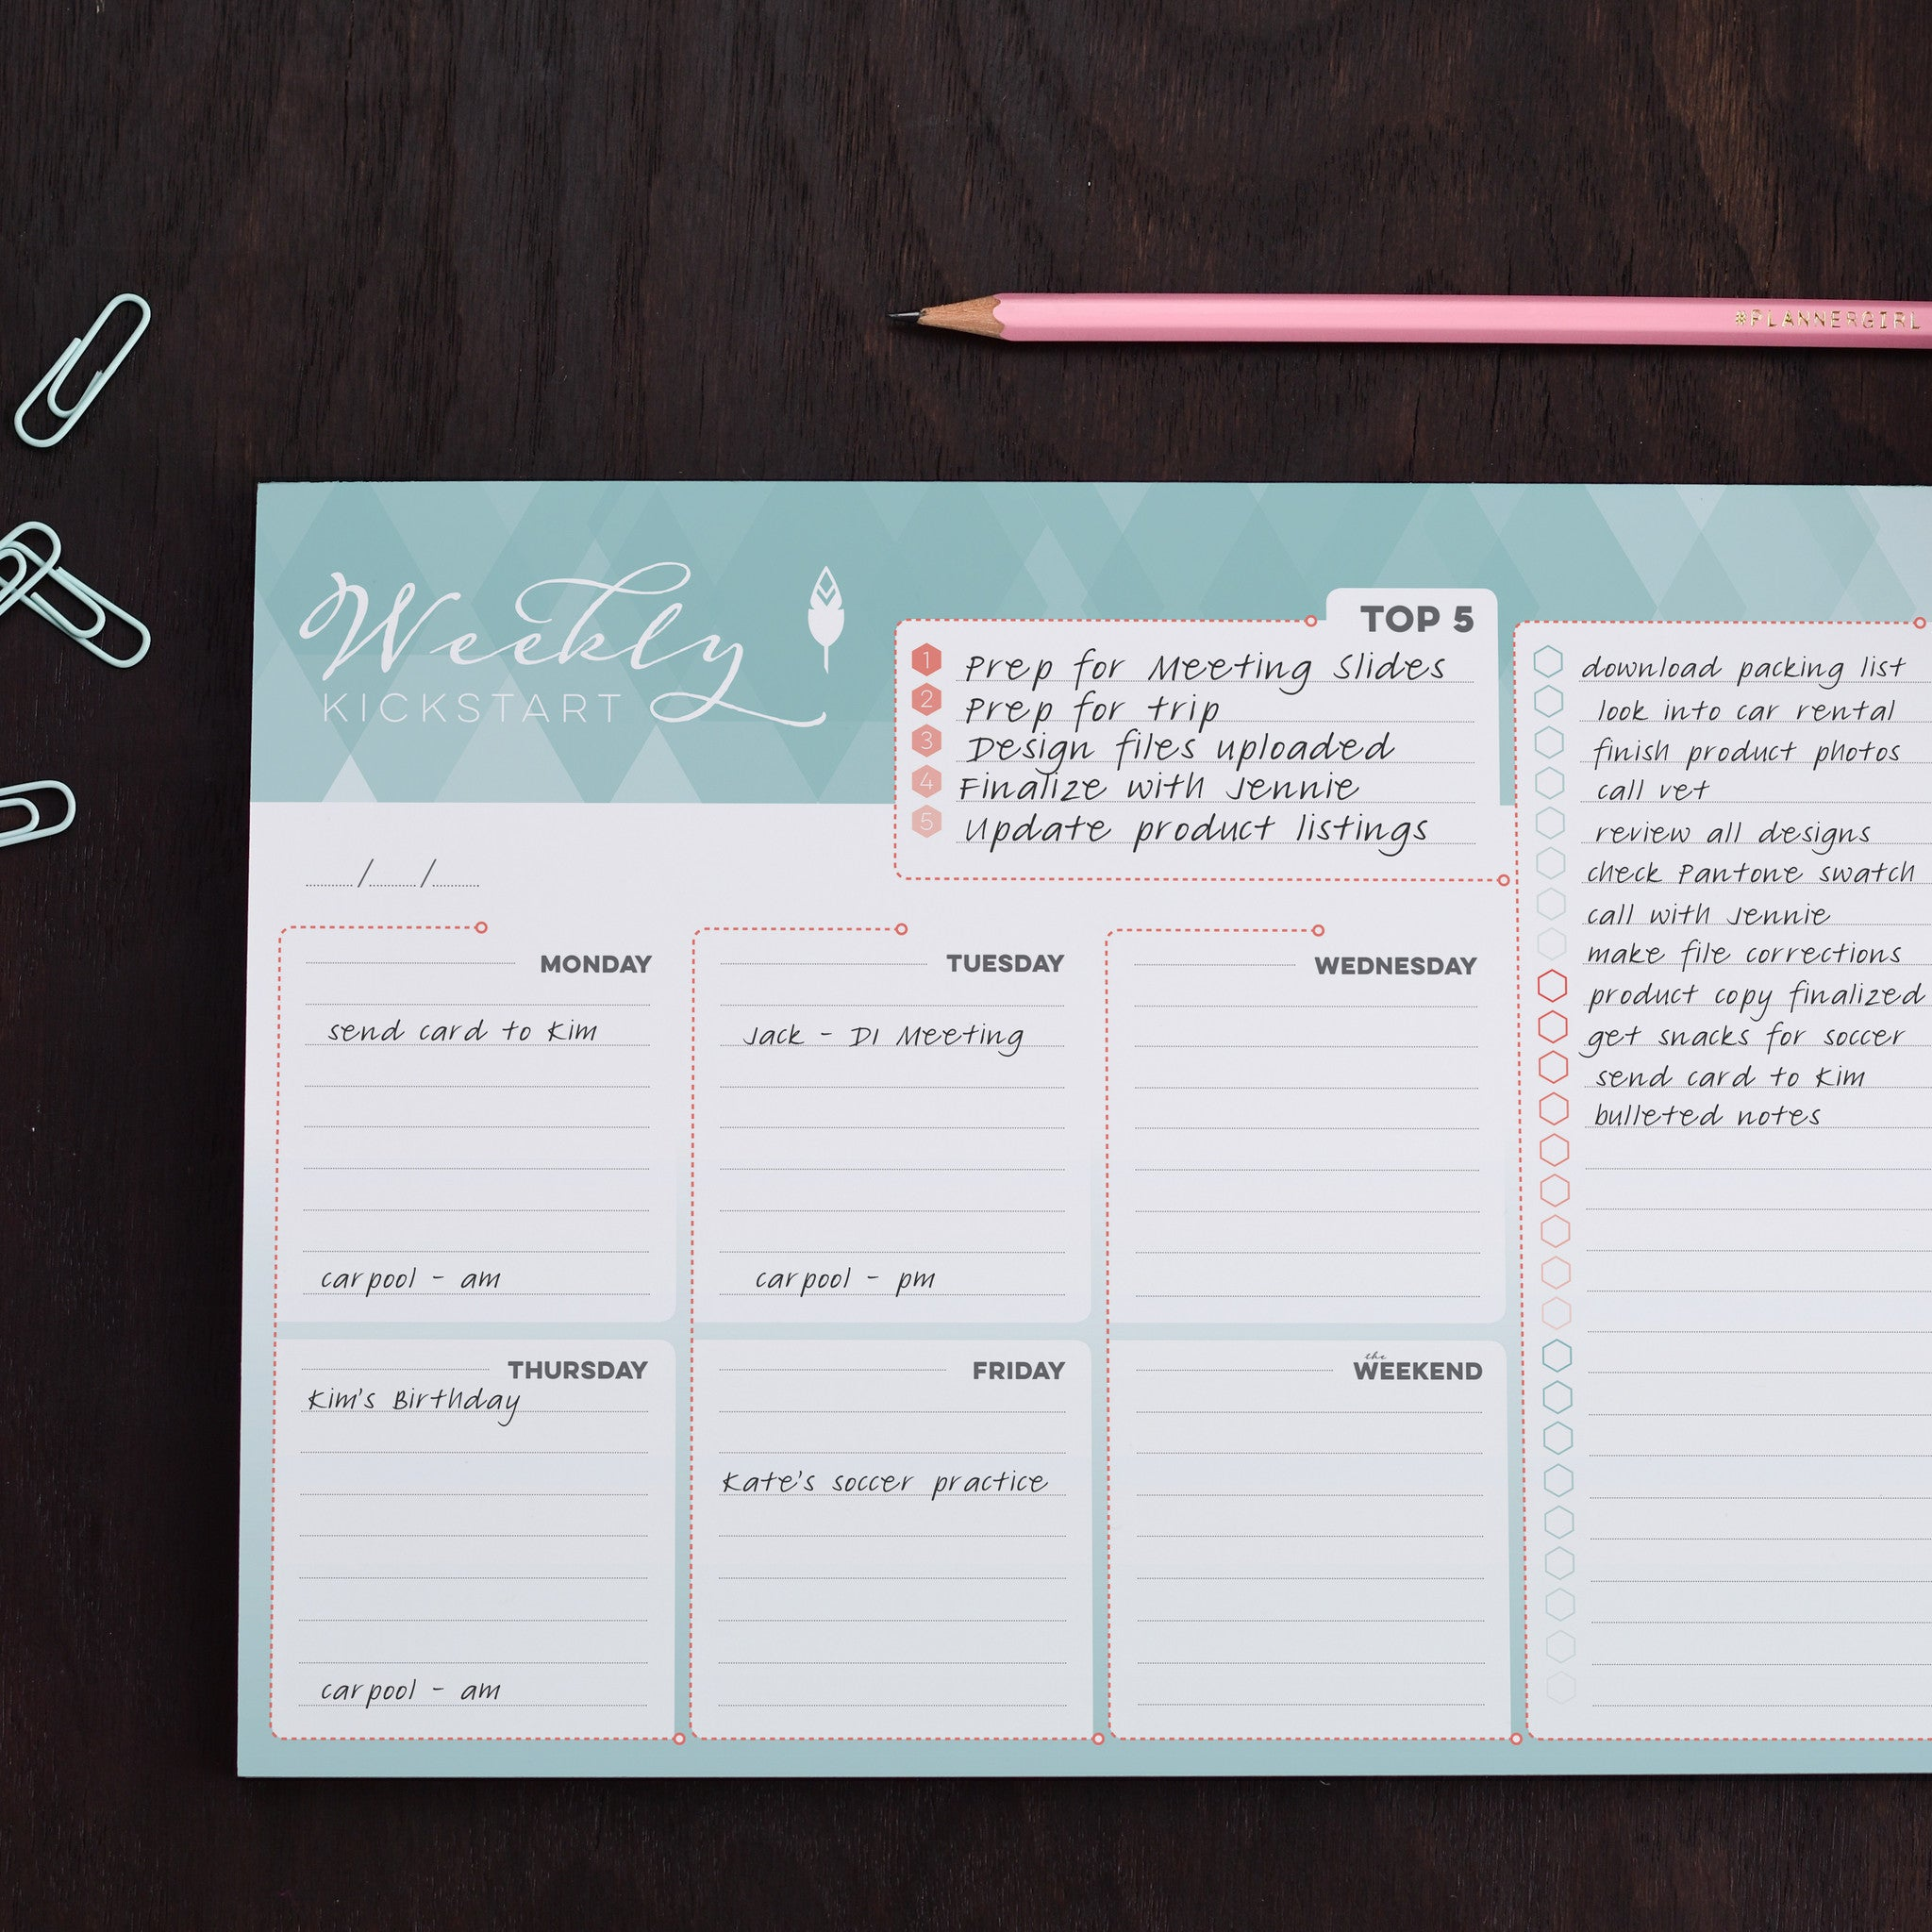 weekly planner notepad to organize your weekly schedule errands and tasks